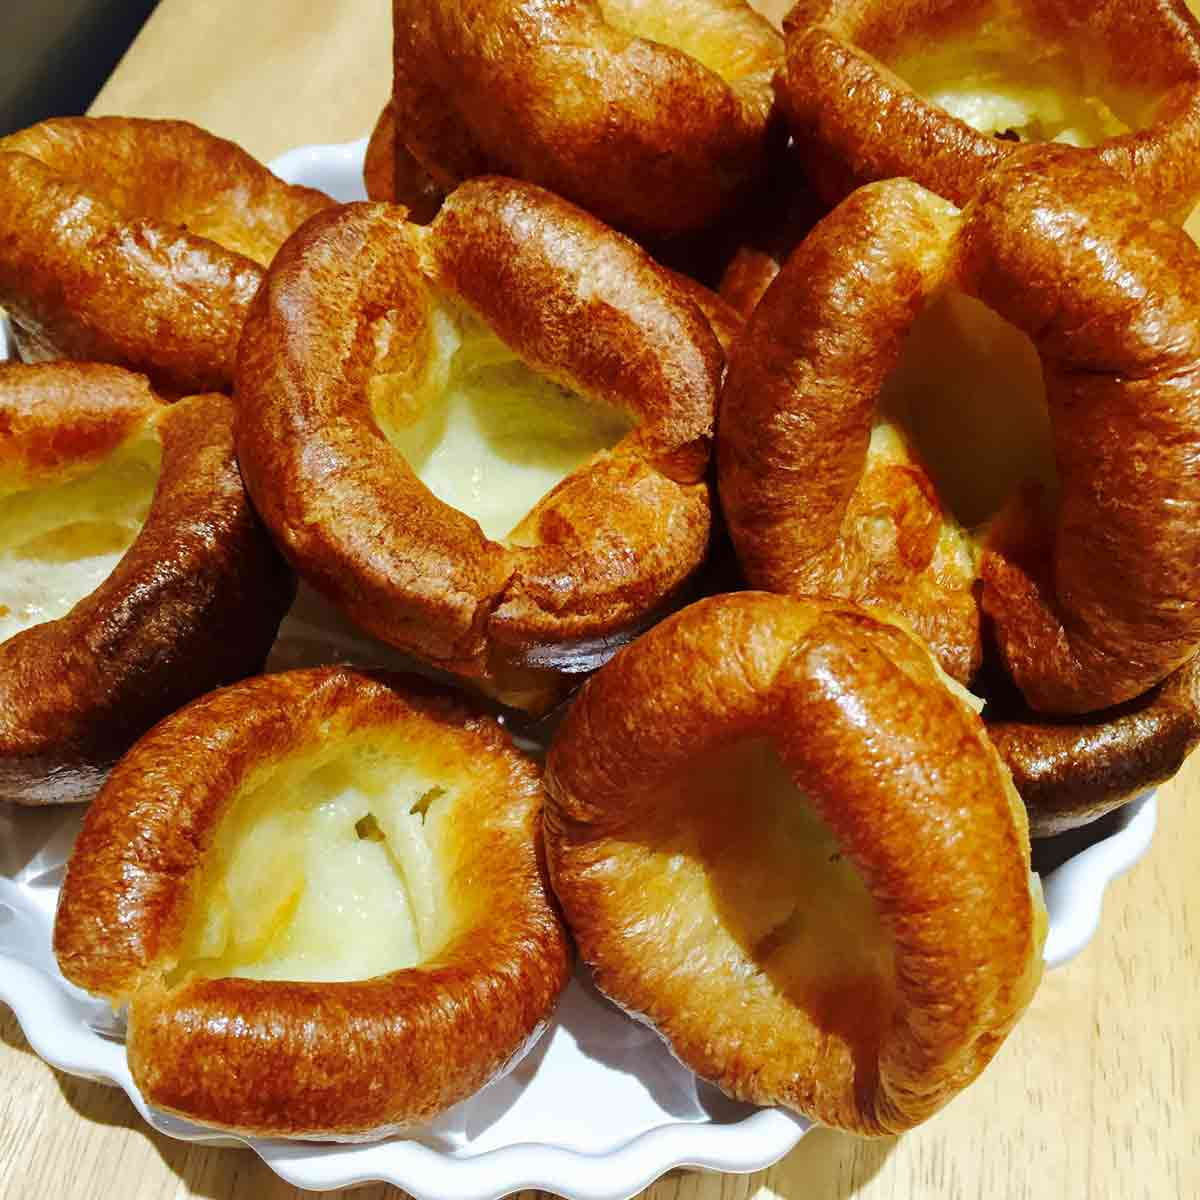 Yorkshire puddings on a white plate